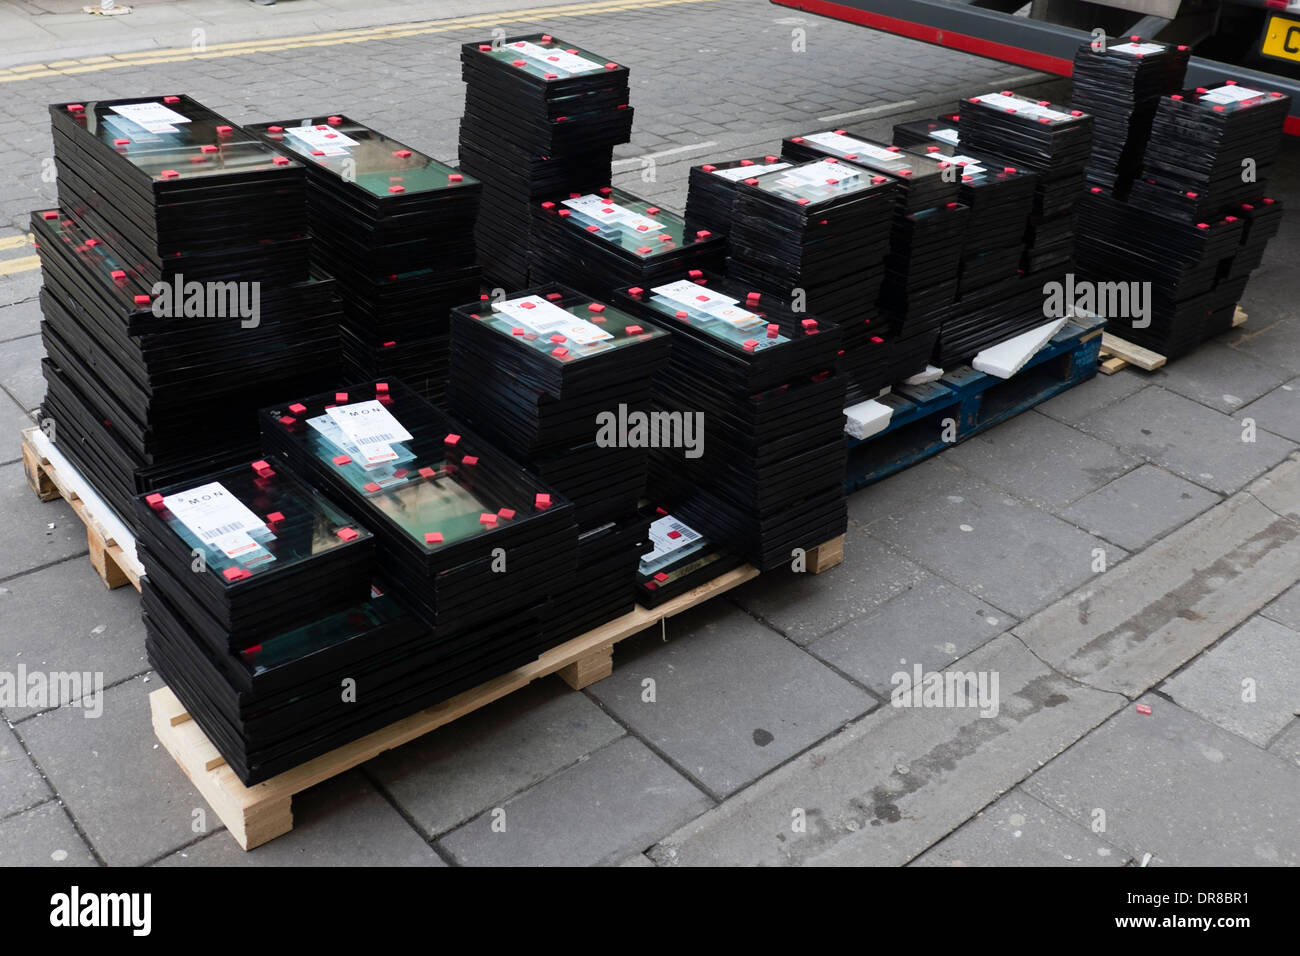 A stack of Double glazing glass replacement window panes on a pallet UK - Stock Image